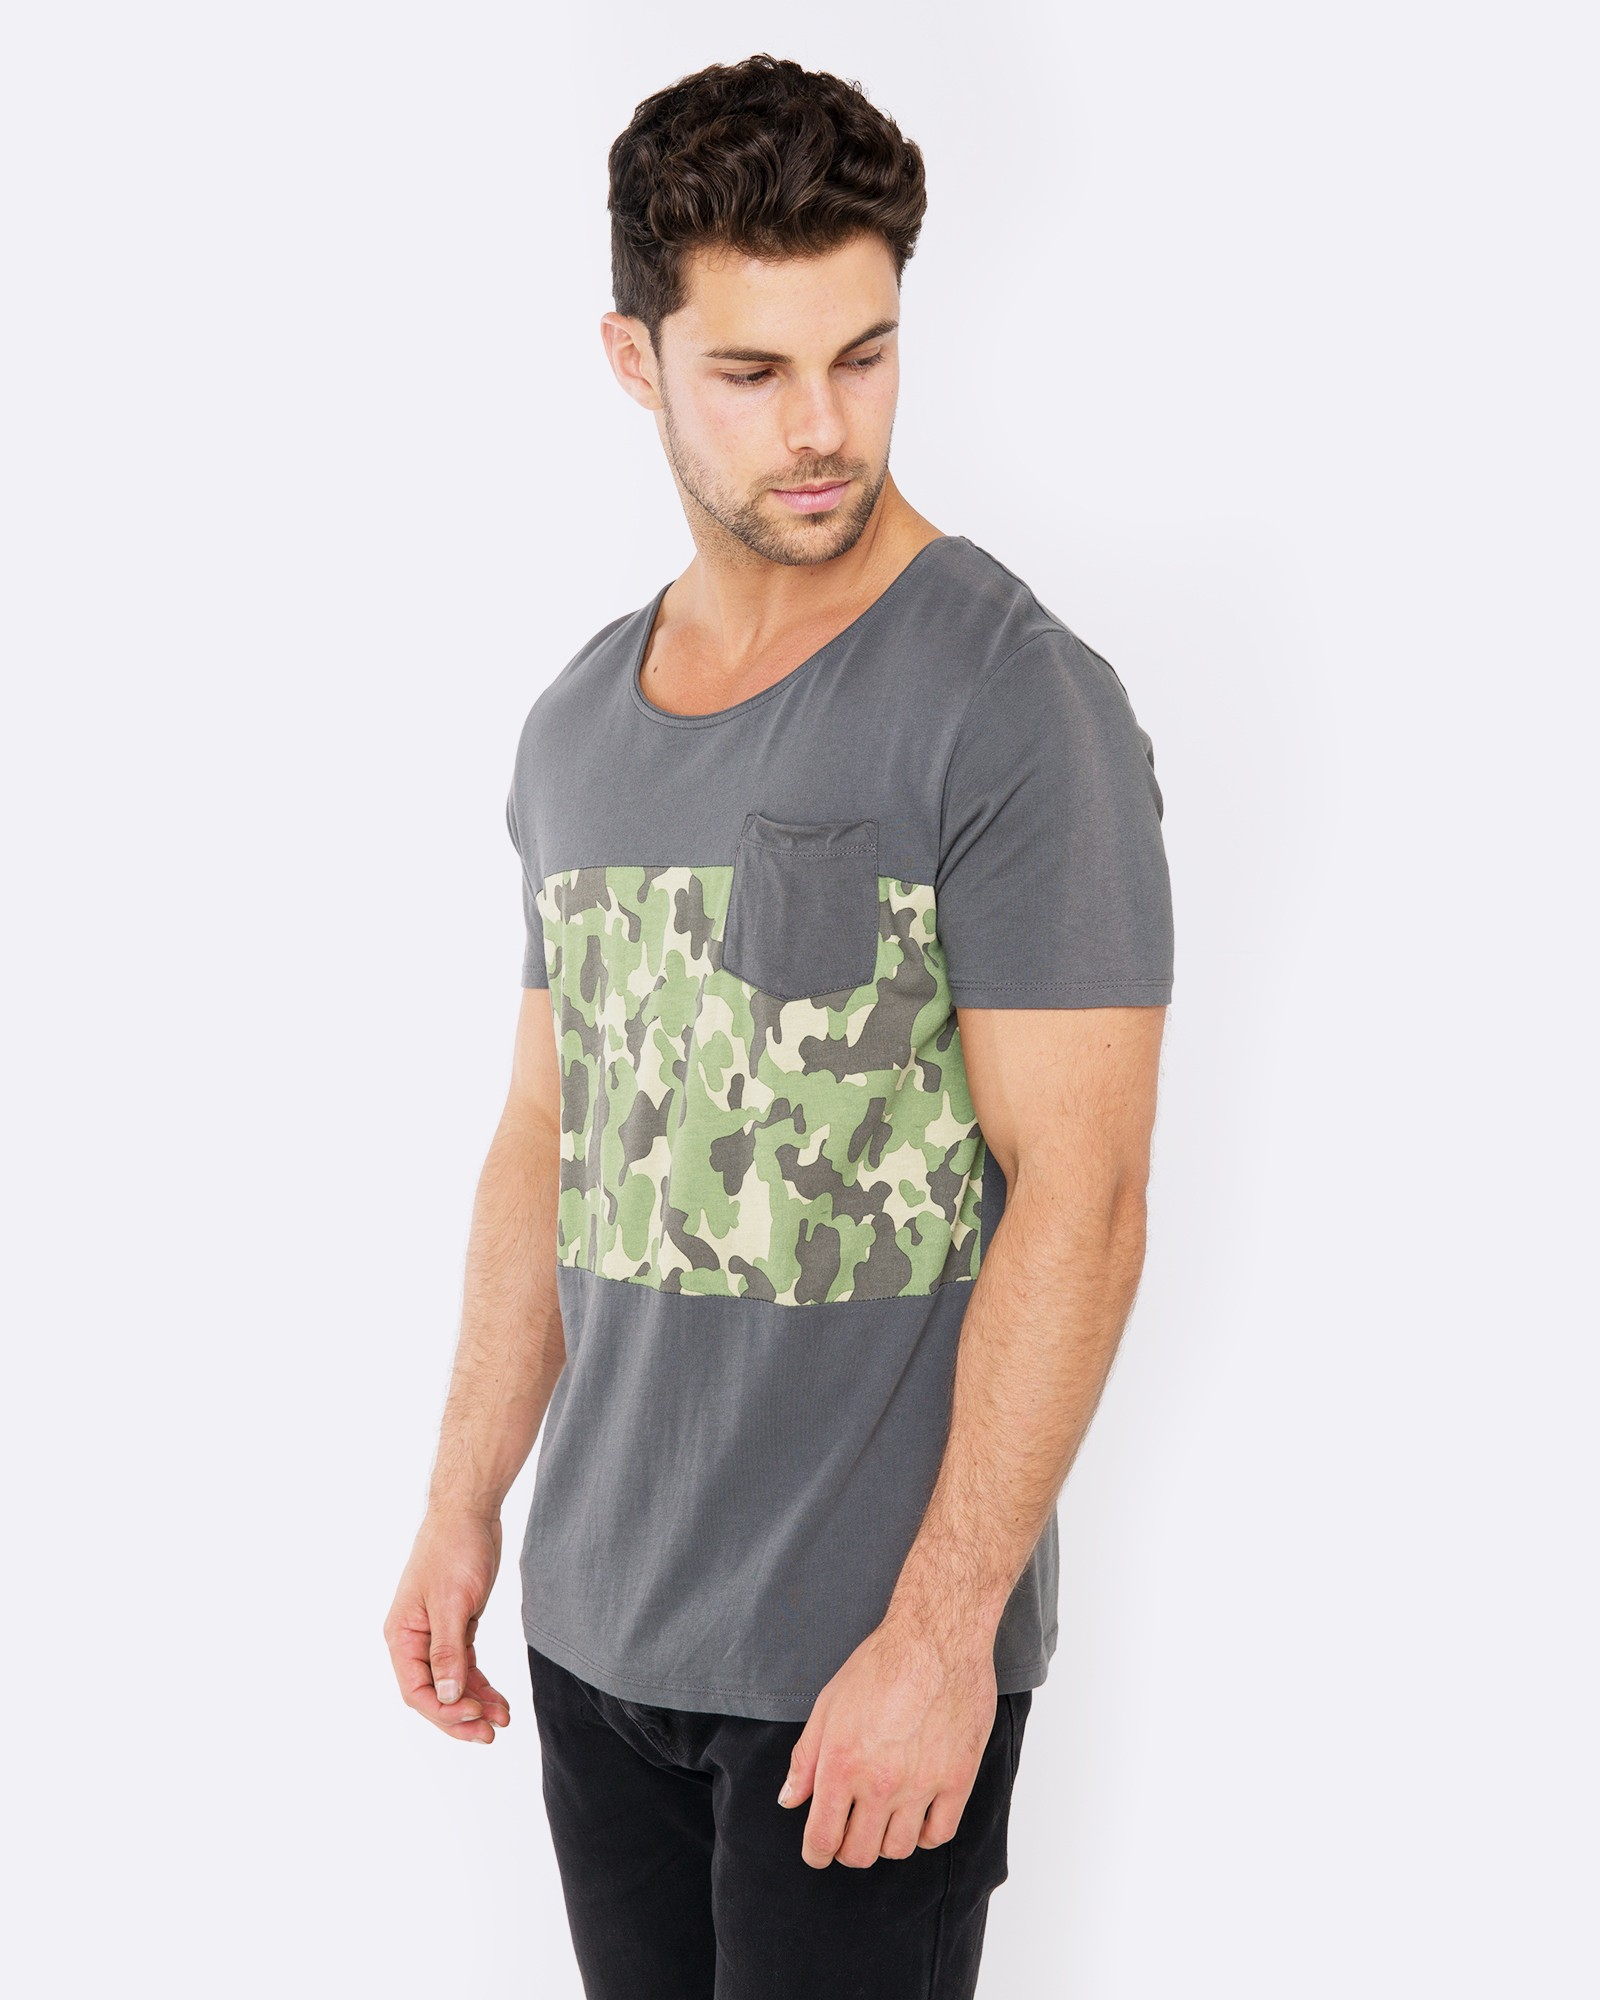 FIND ME IN THE WOODS GREY TEE